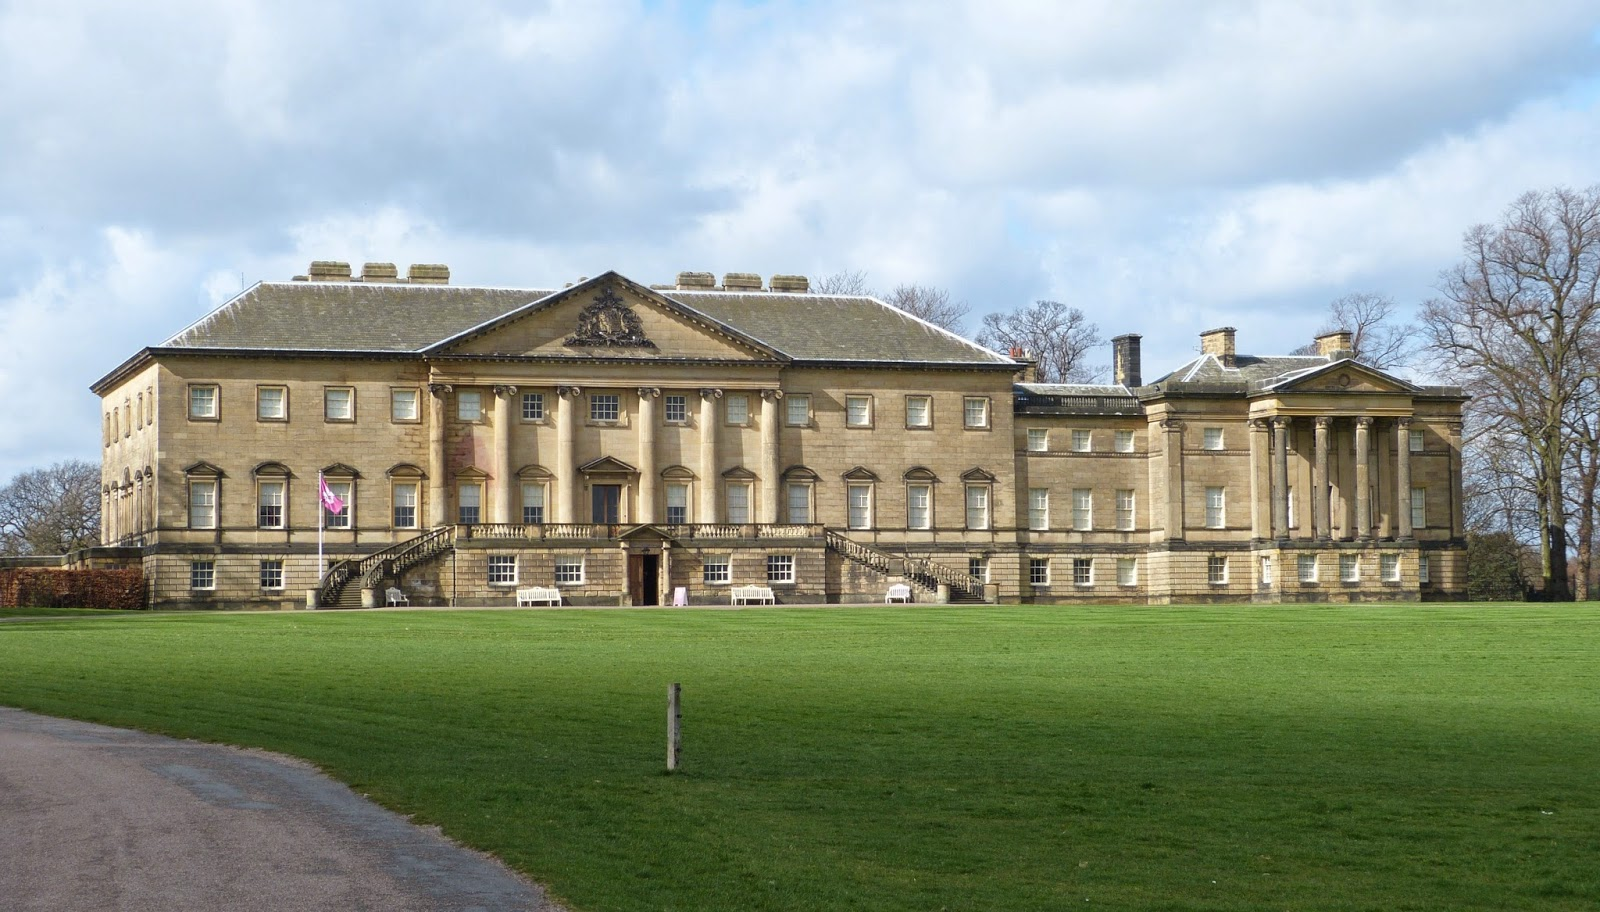 Nostell Priory (2014)